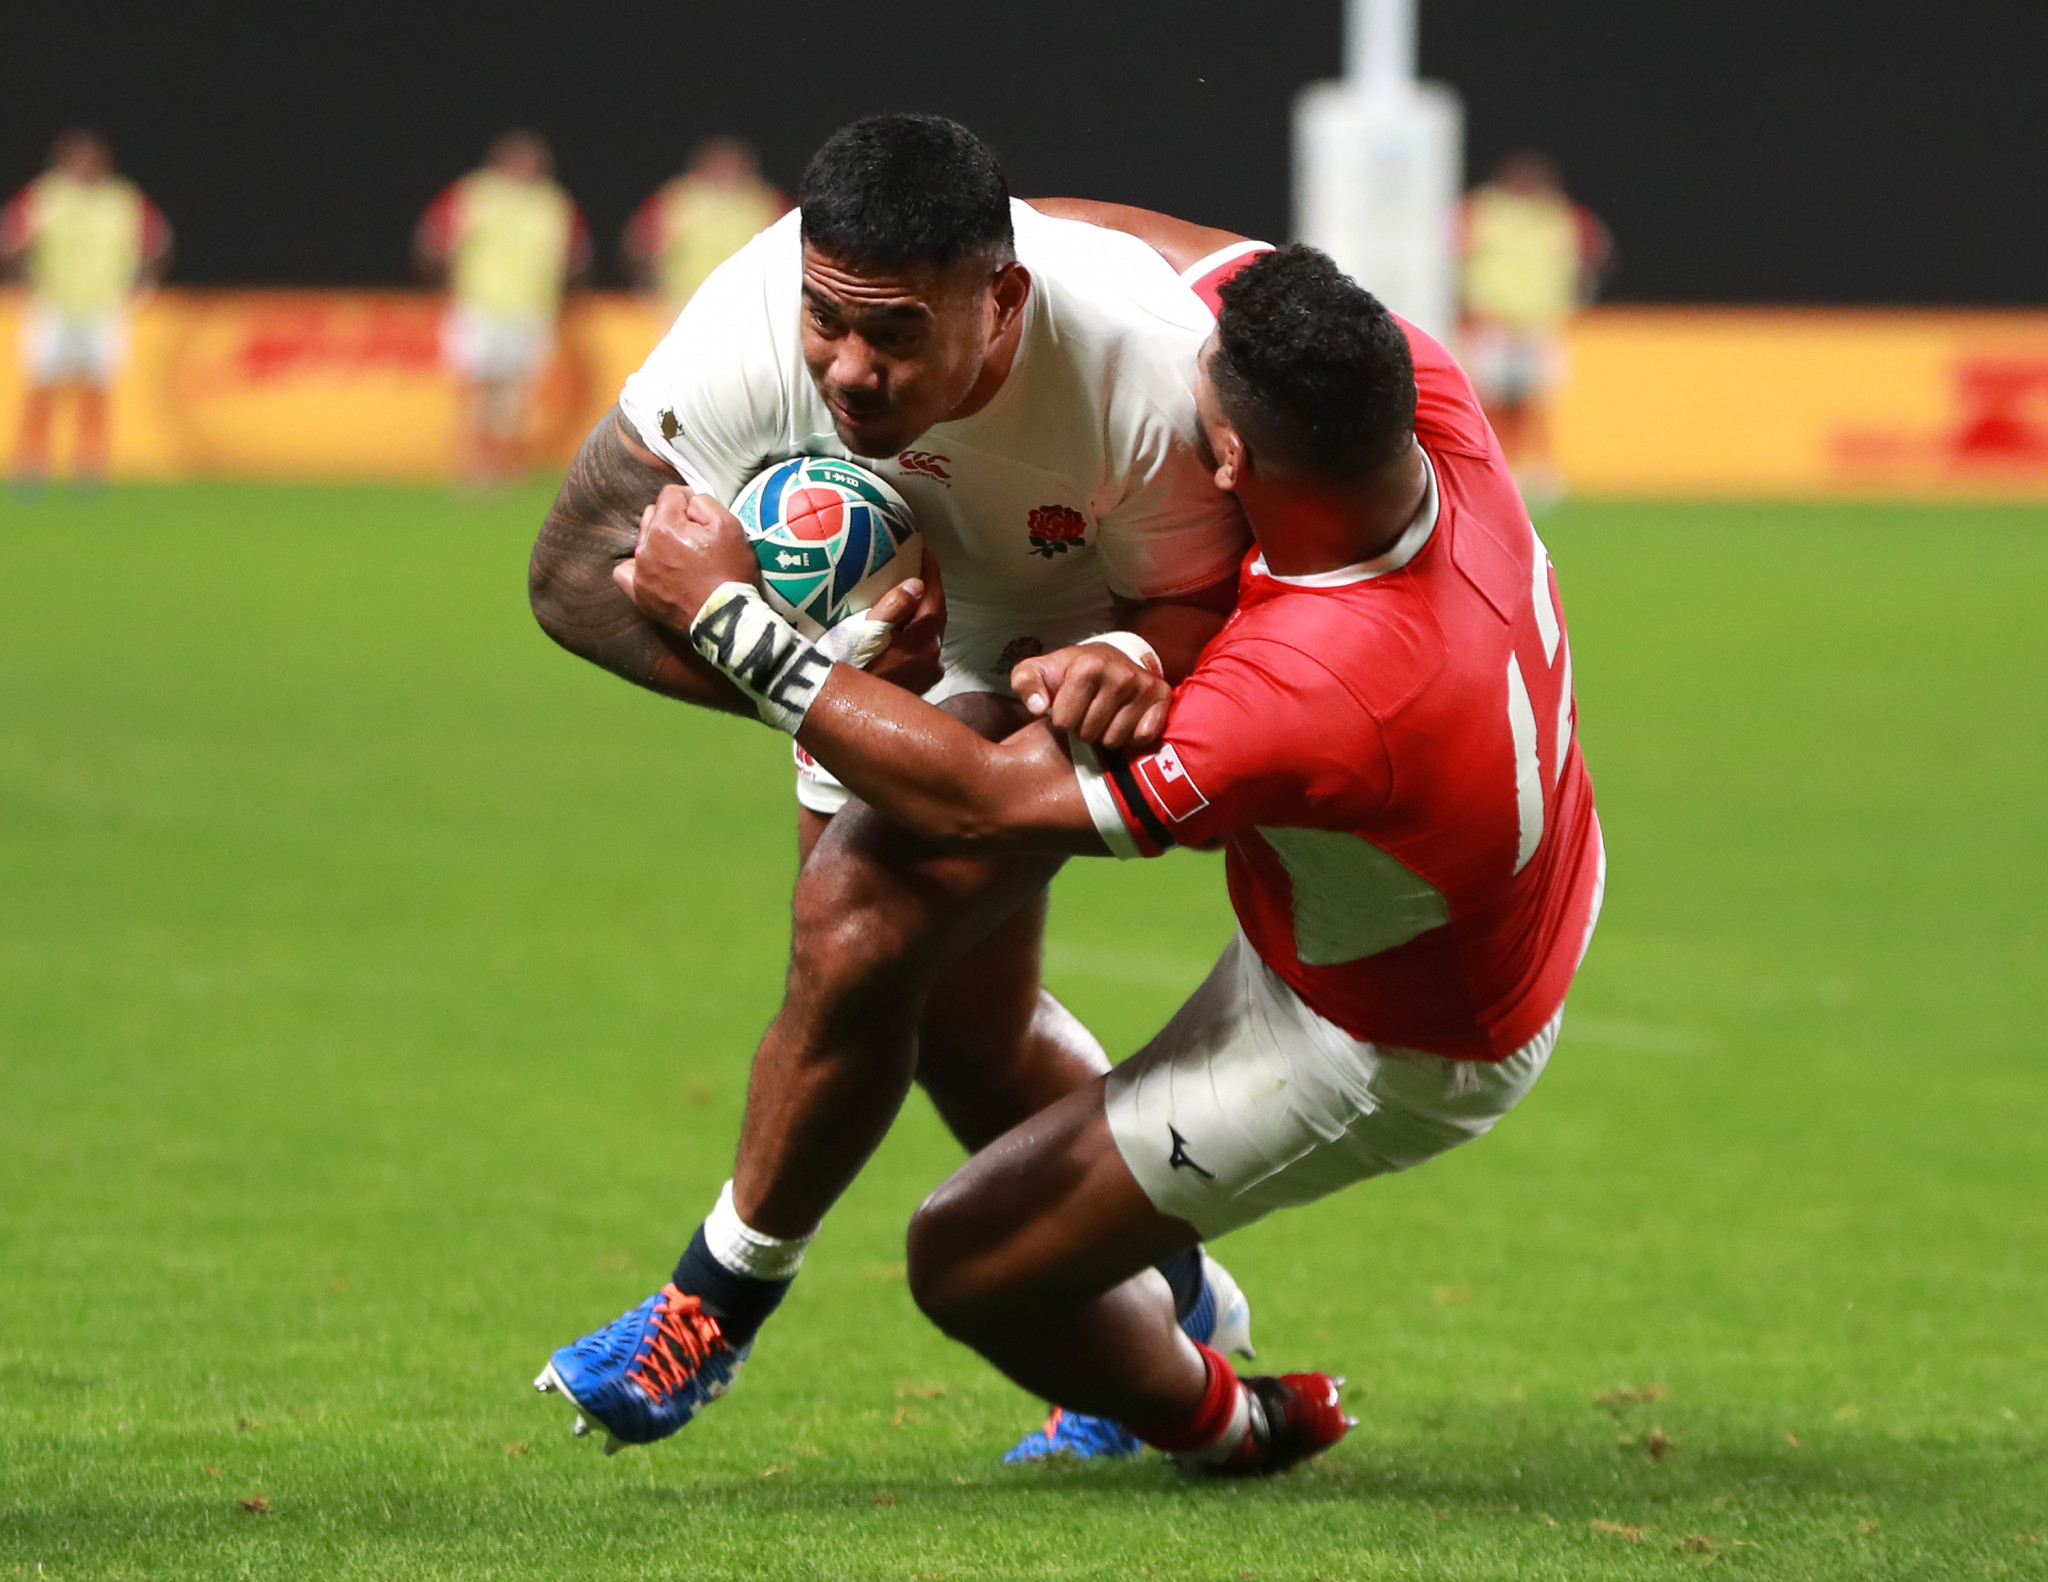 Manu Tuilagi scored a pair of first half tries as England beat Tonga ©Getty Images